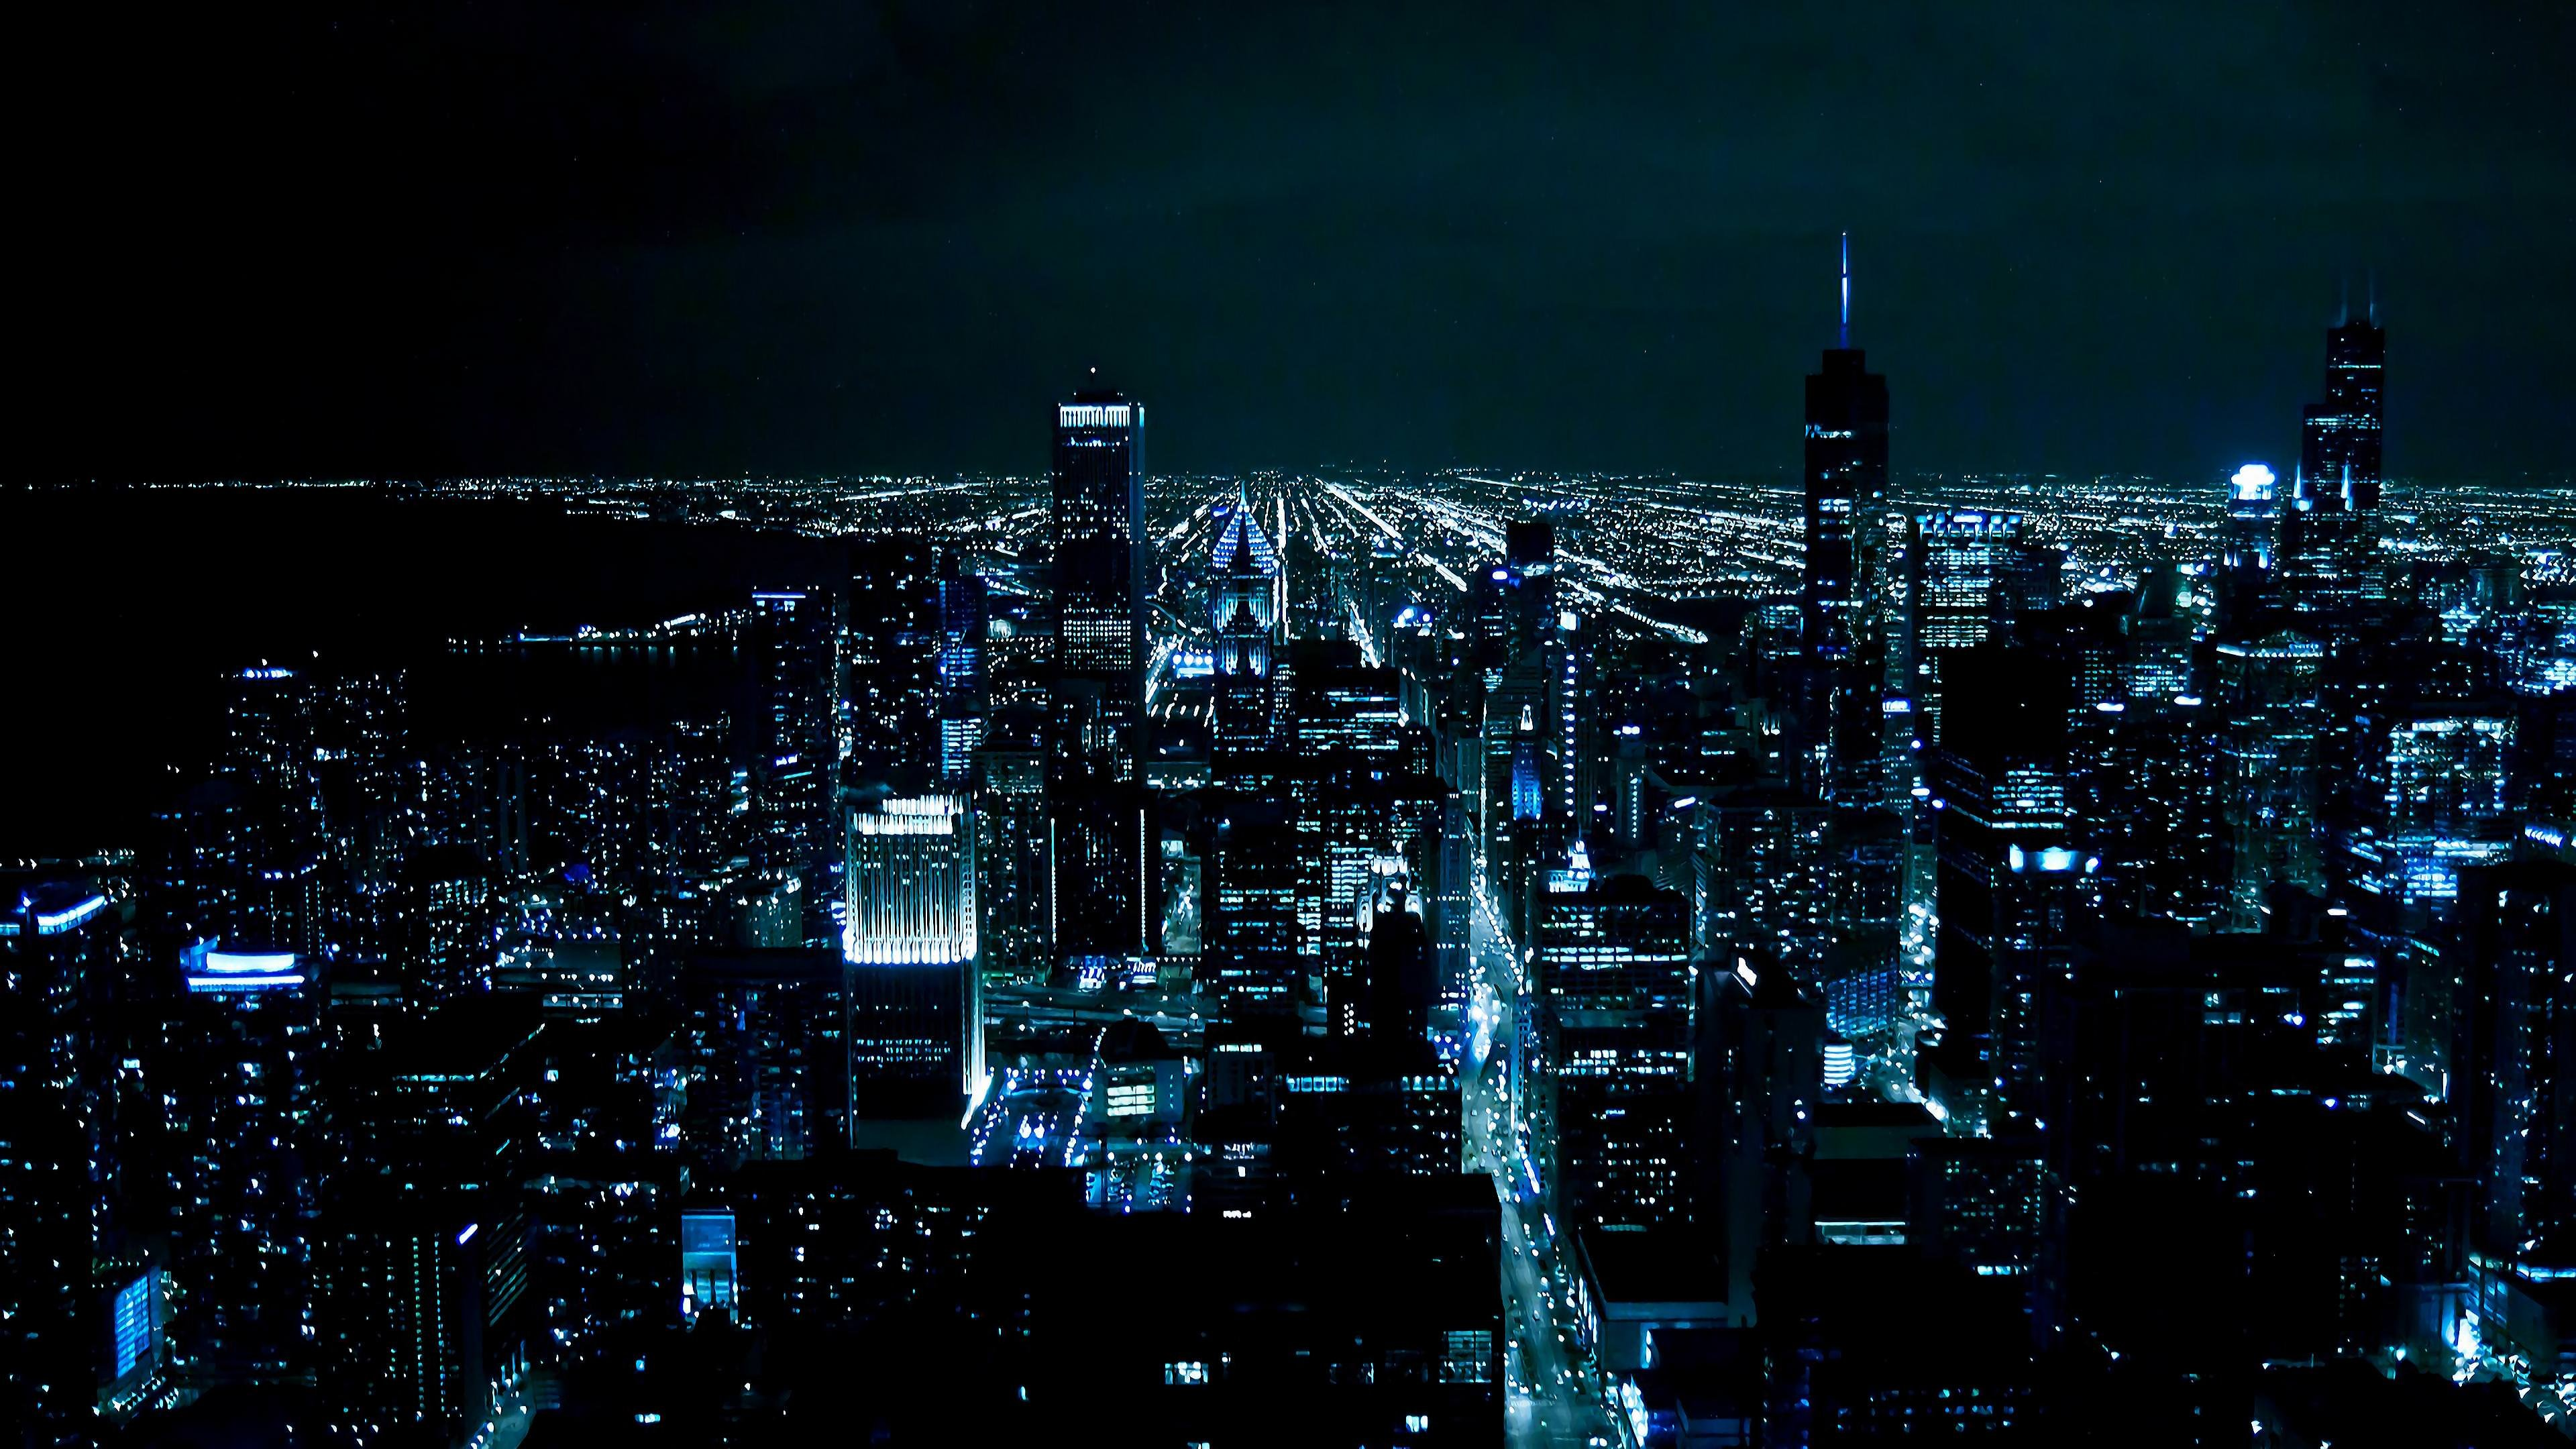 Chicago 4k Wallpapers For Your Desktop Or Mobile Screen Free And Easy To Download